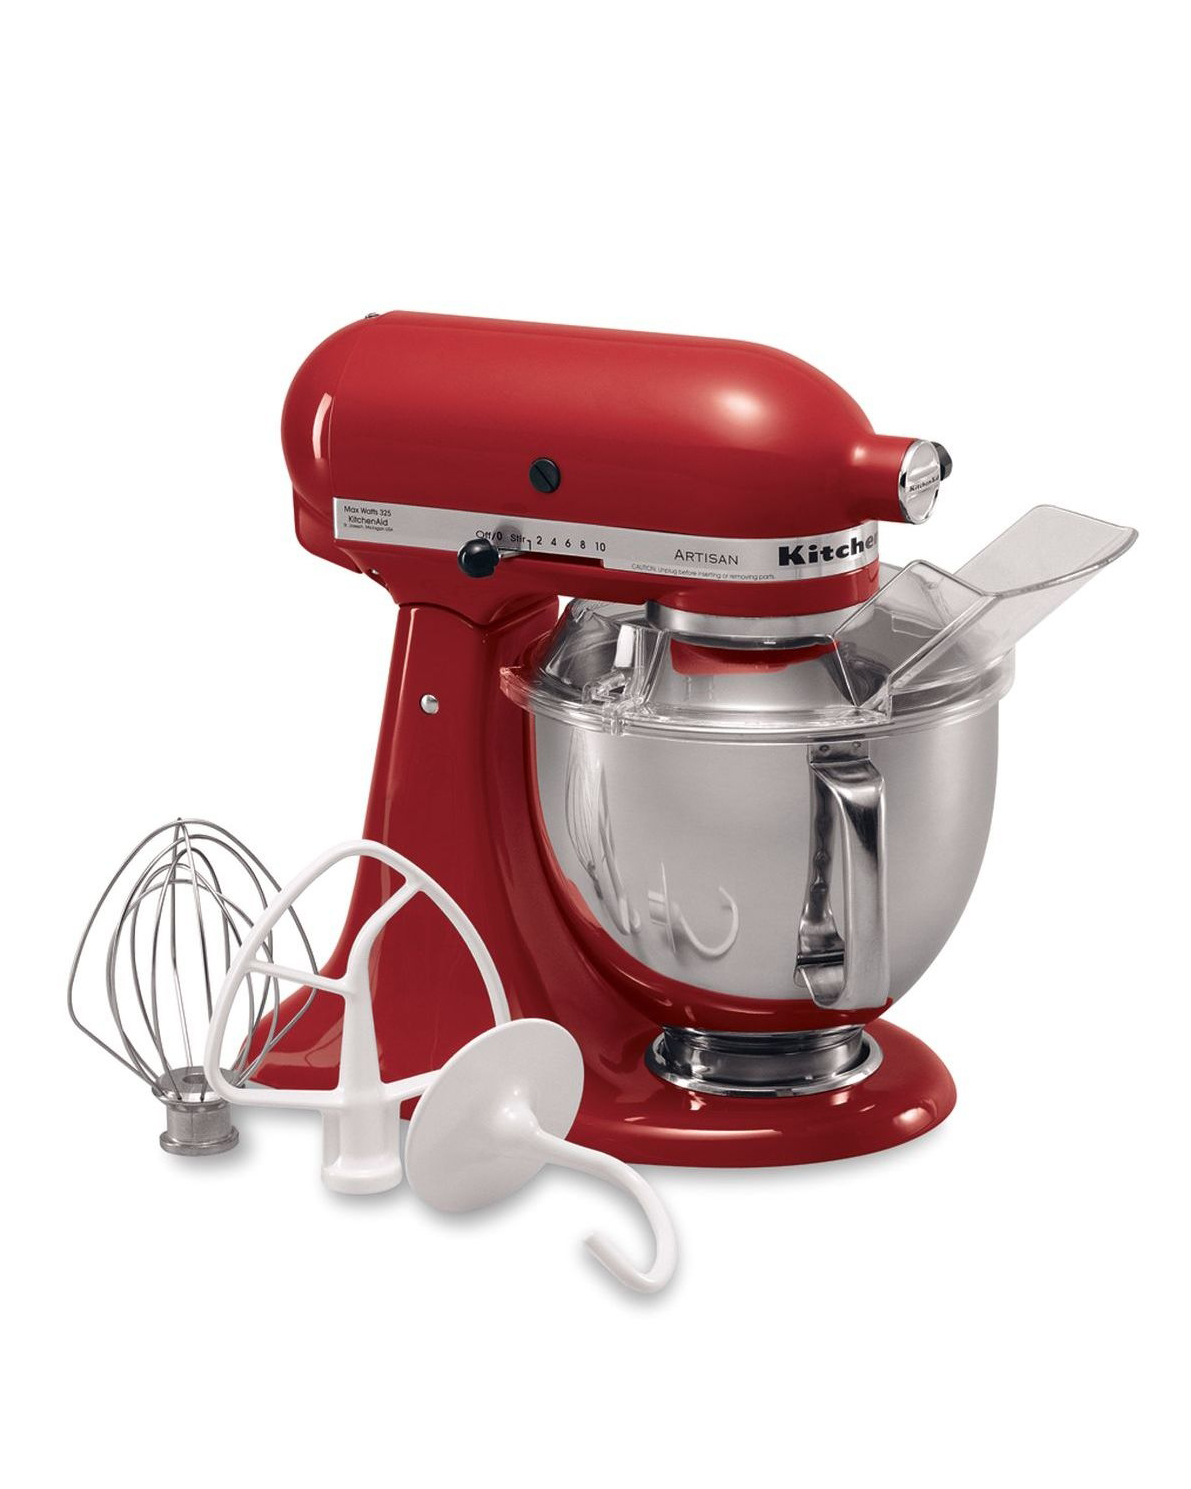 martha-bride-registry-erin-fetherston-kitchenaid-artisan-design-series-stand-mixer-0515.jpg